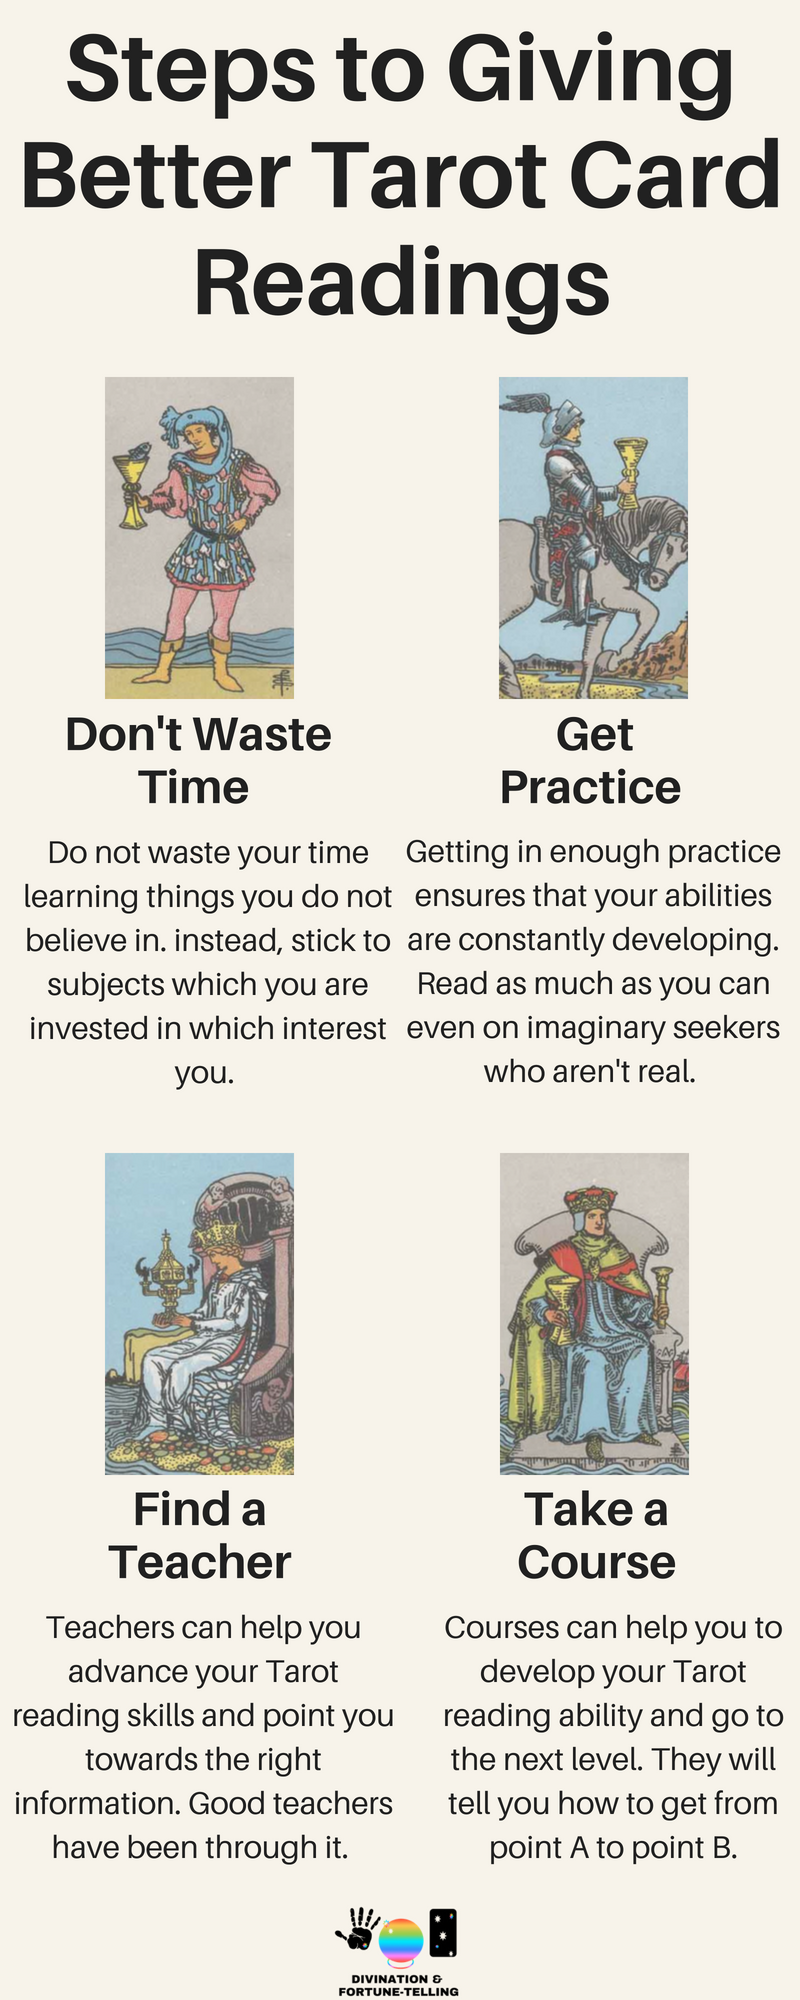 Illustration: How to go from beginner to professional Tarot reader in these steps! If you want to give better card readings, follow the tips in this cheat sheet. Card deck is the Rider Waite Page, Knight, Queen and King of Cups - divination and fortune telling.